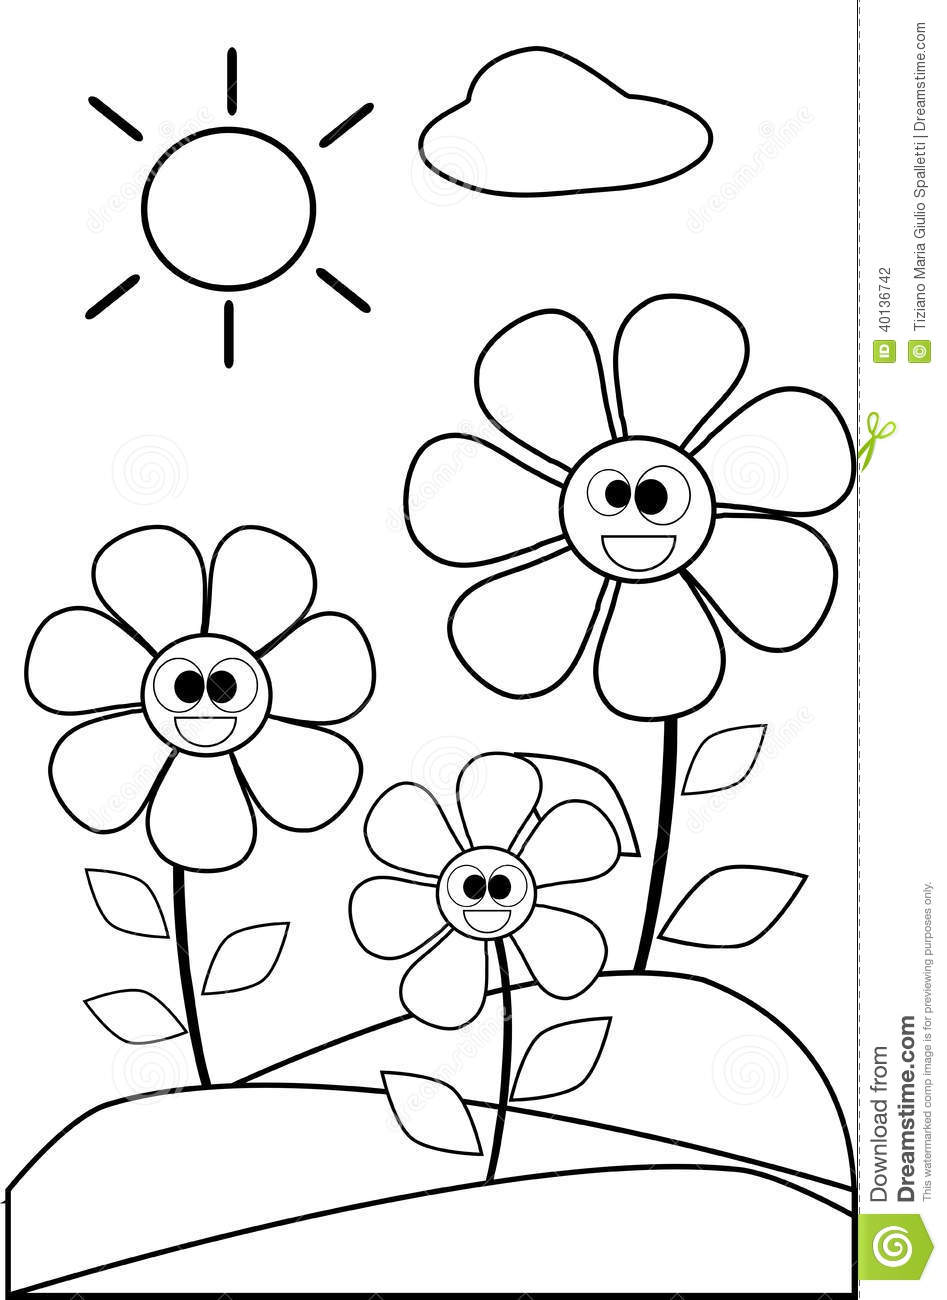 images of flowers to color free printable flower coloring pages for kids best to color images of flowers